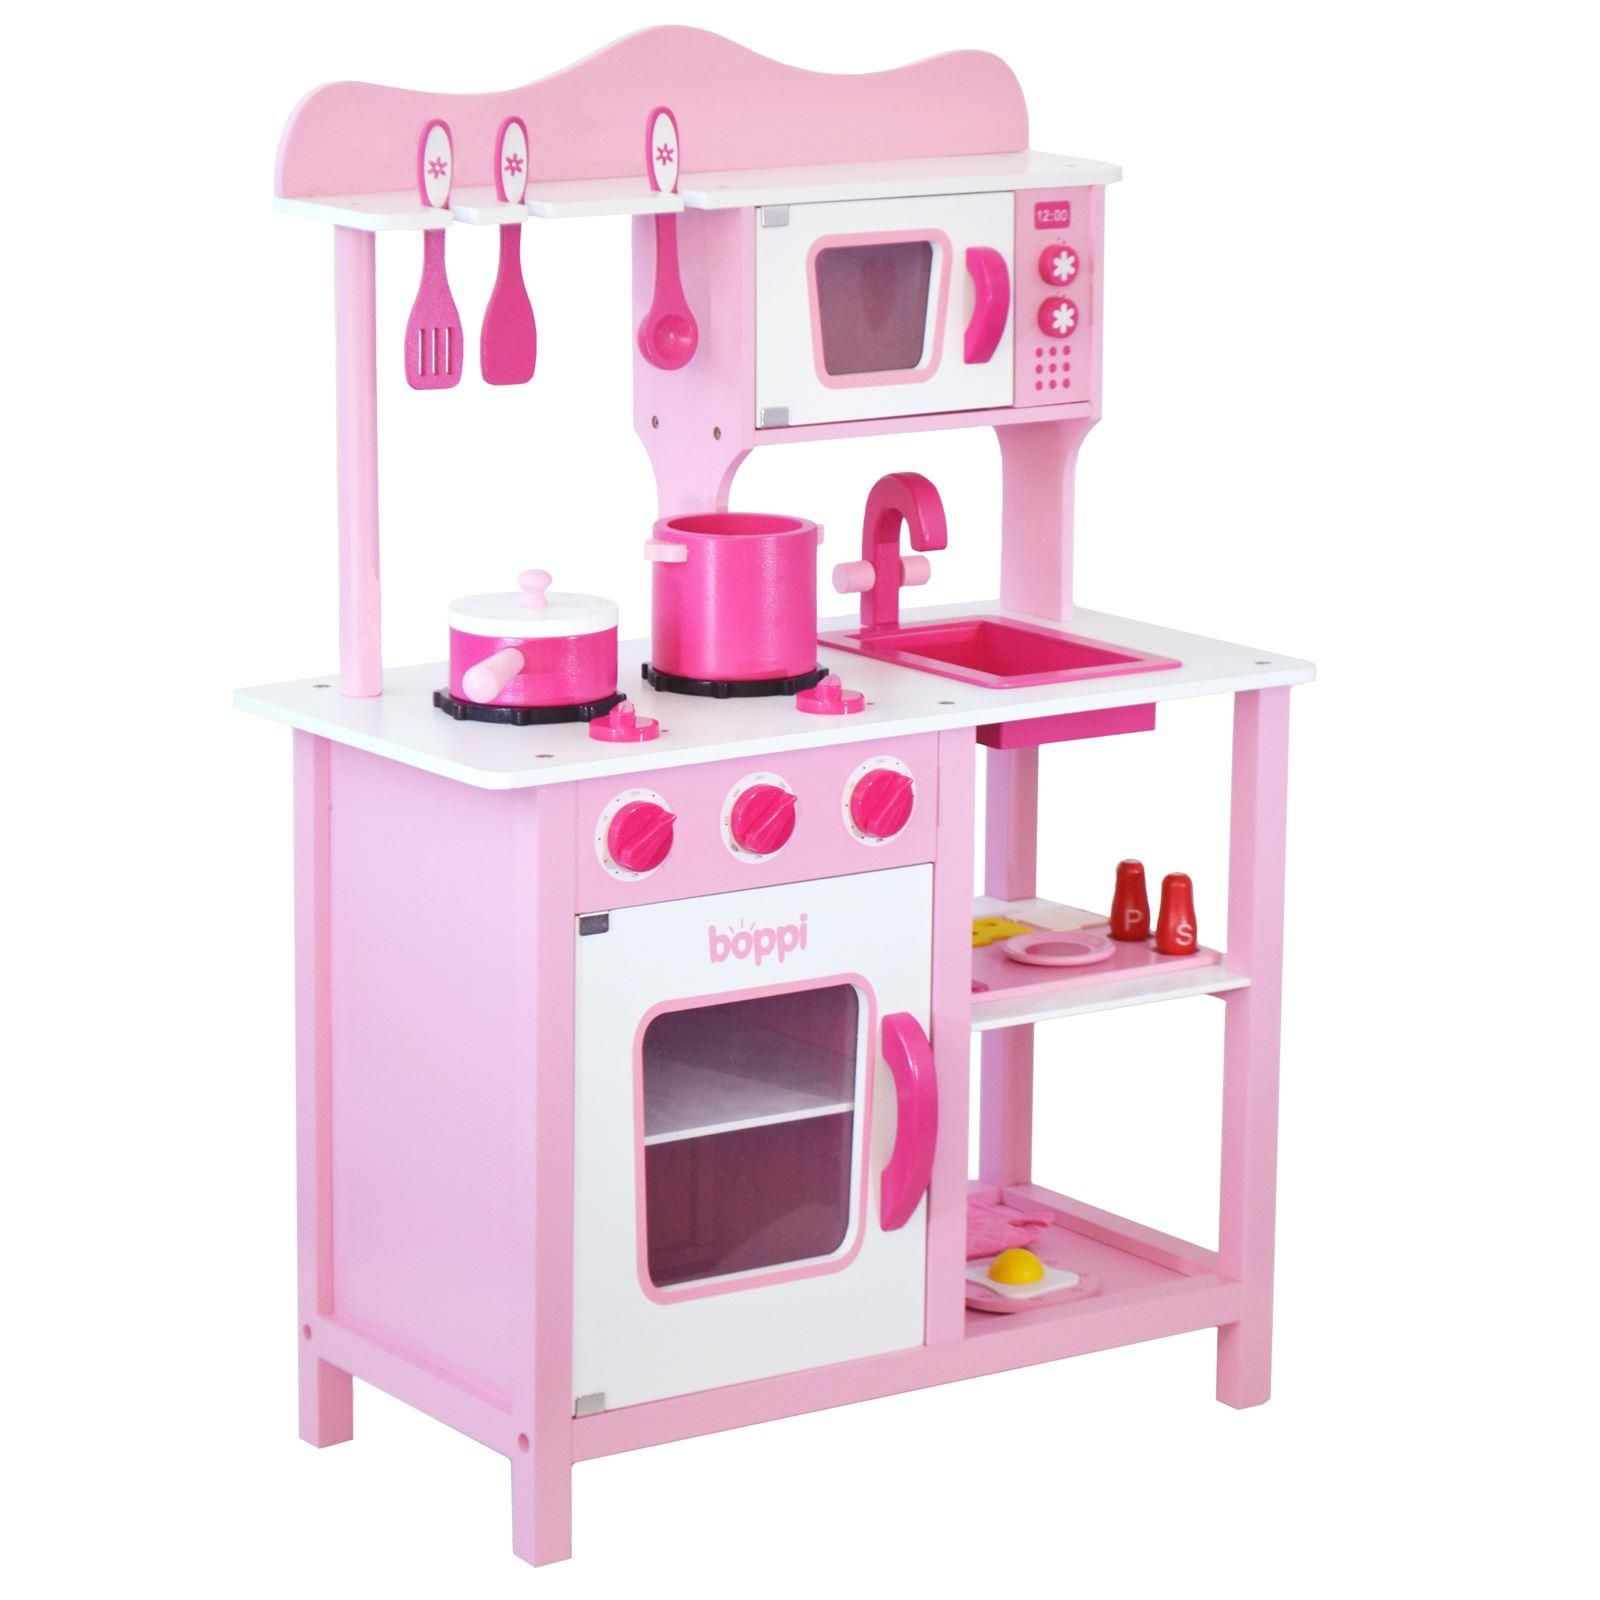 boppi Wooden Toy Kitchen Full Length